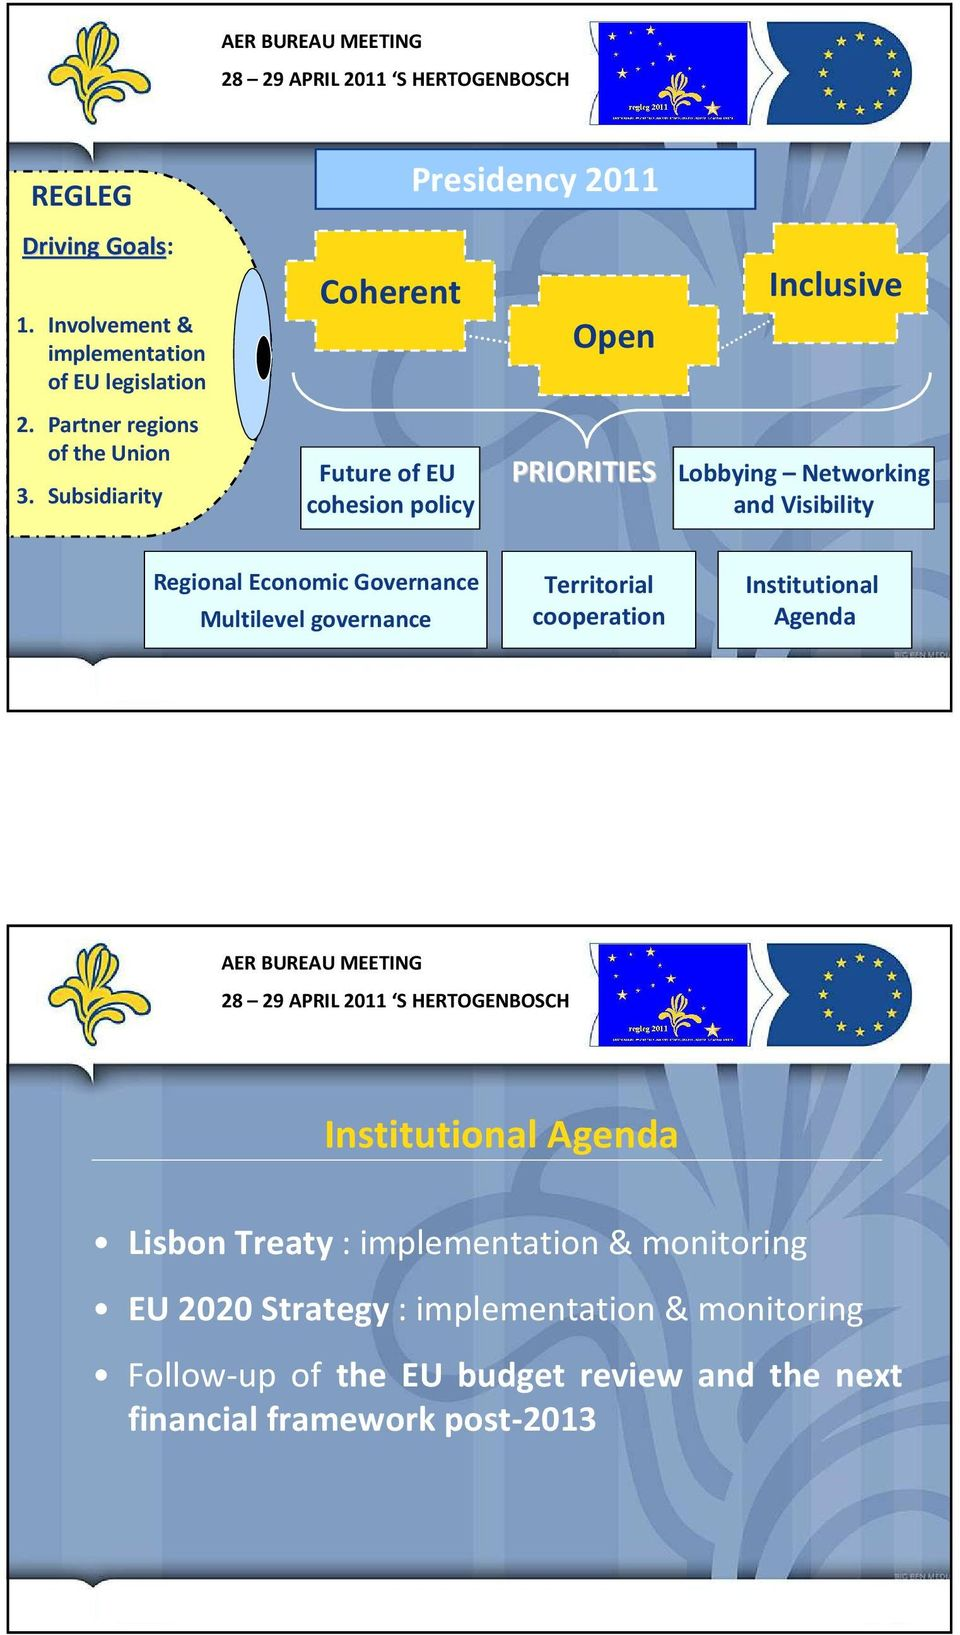 Subsidiarity Future of EU cohesion policy PRIORITIES Lobbying Networking and Visibility Regional Economic Governance Multilevel